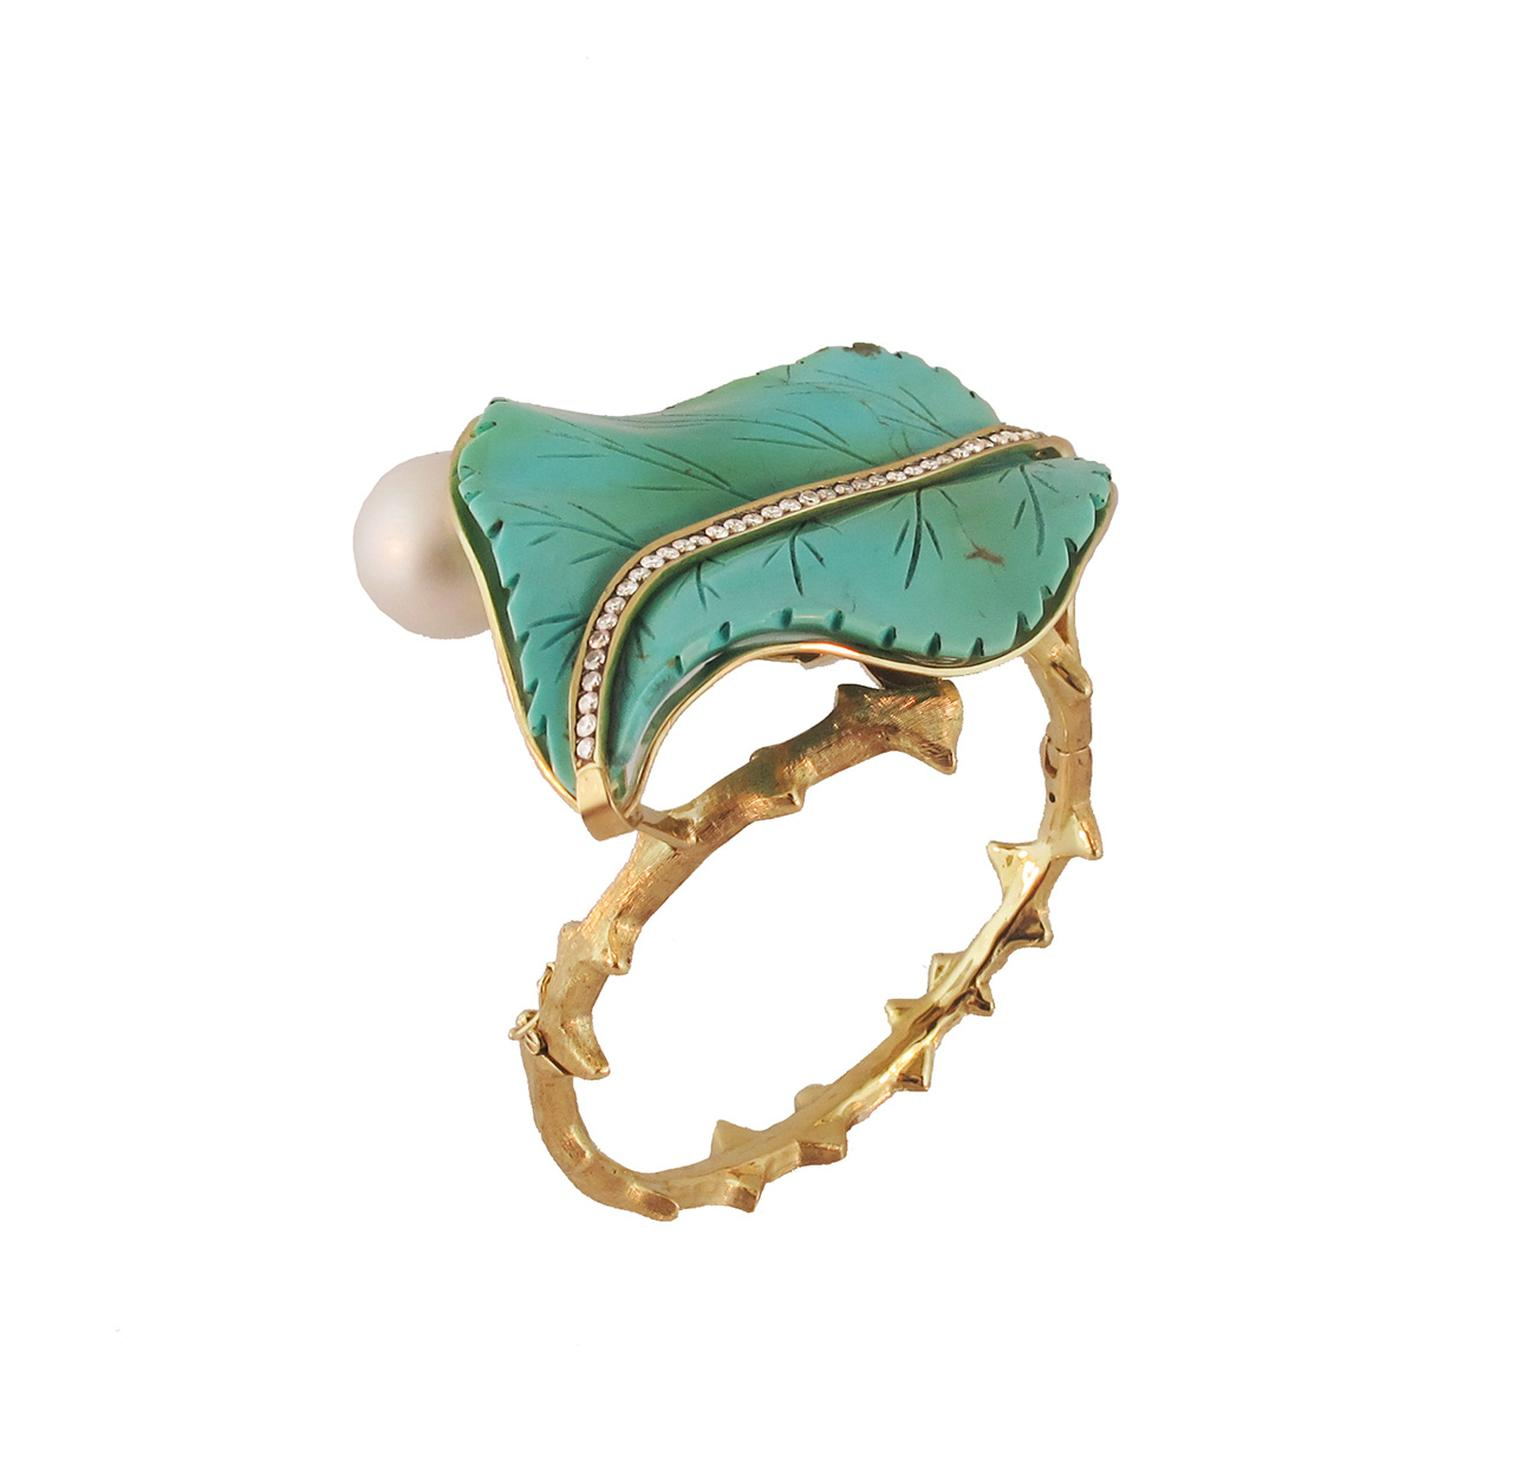 Silvia Furmanovich turquoise leaf cuff in gold, with diamonds and a pearl.